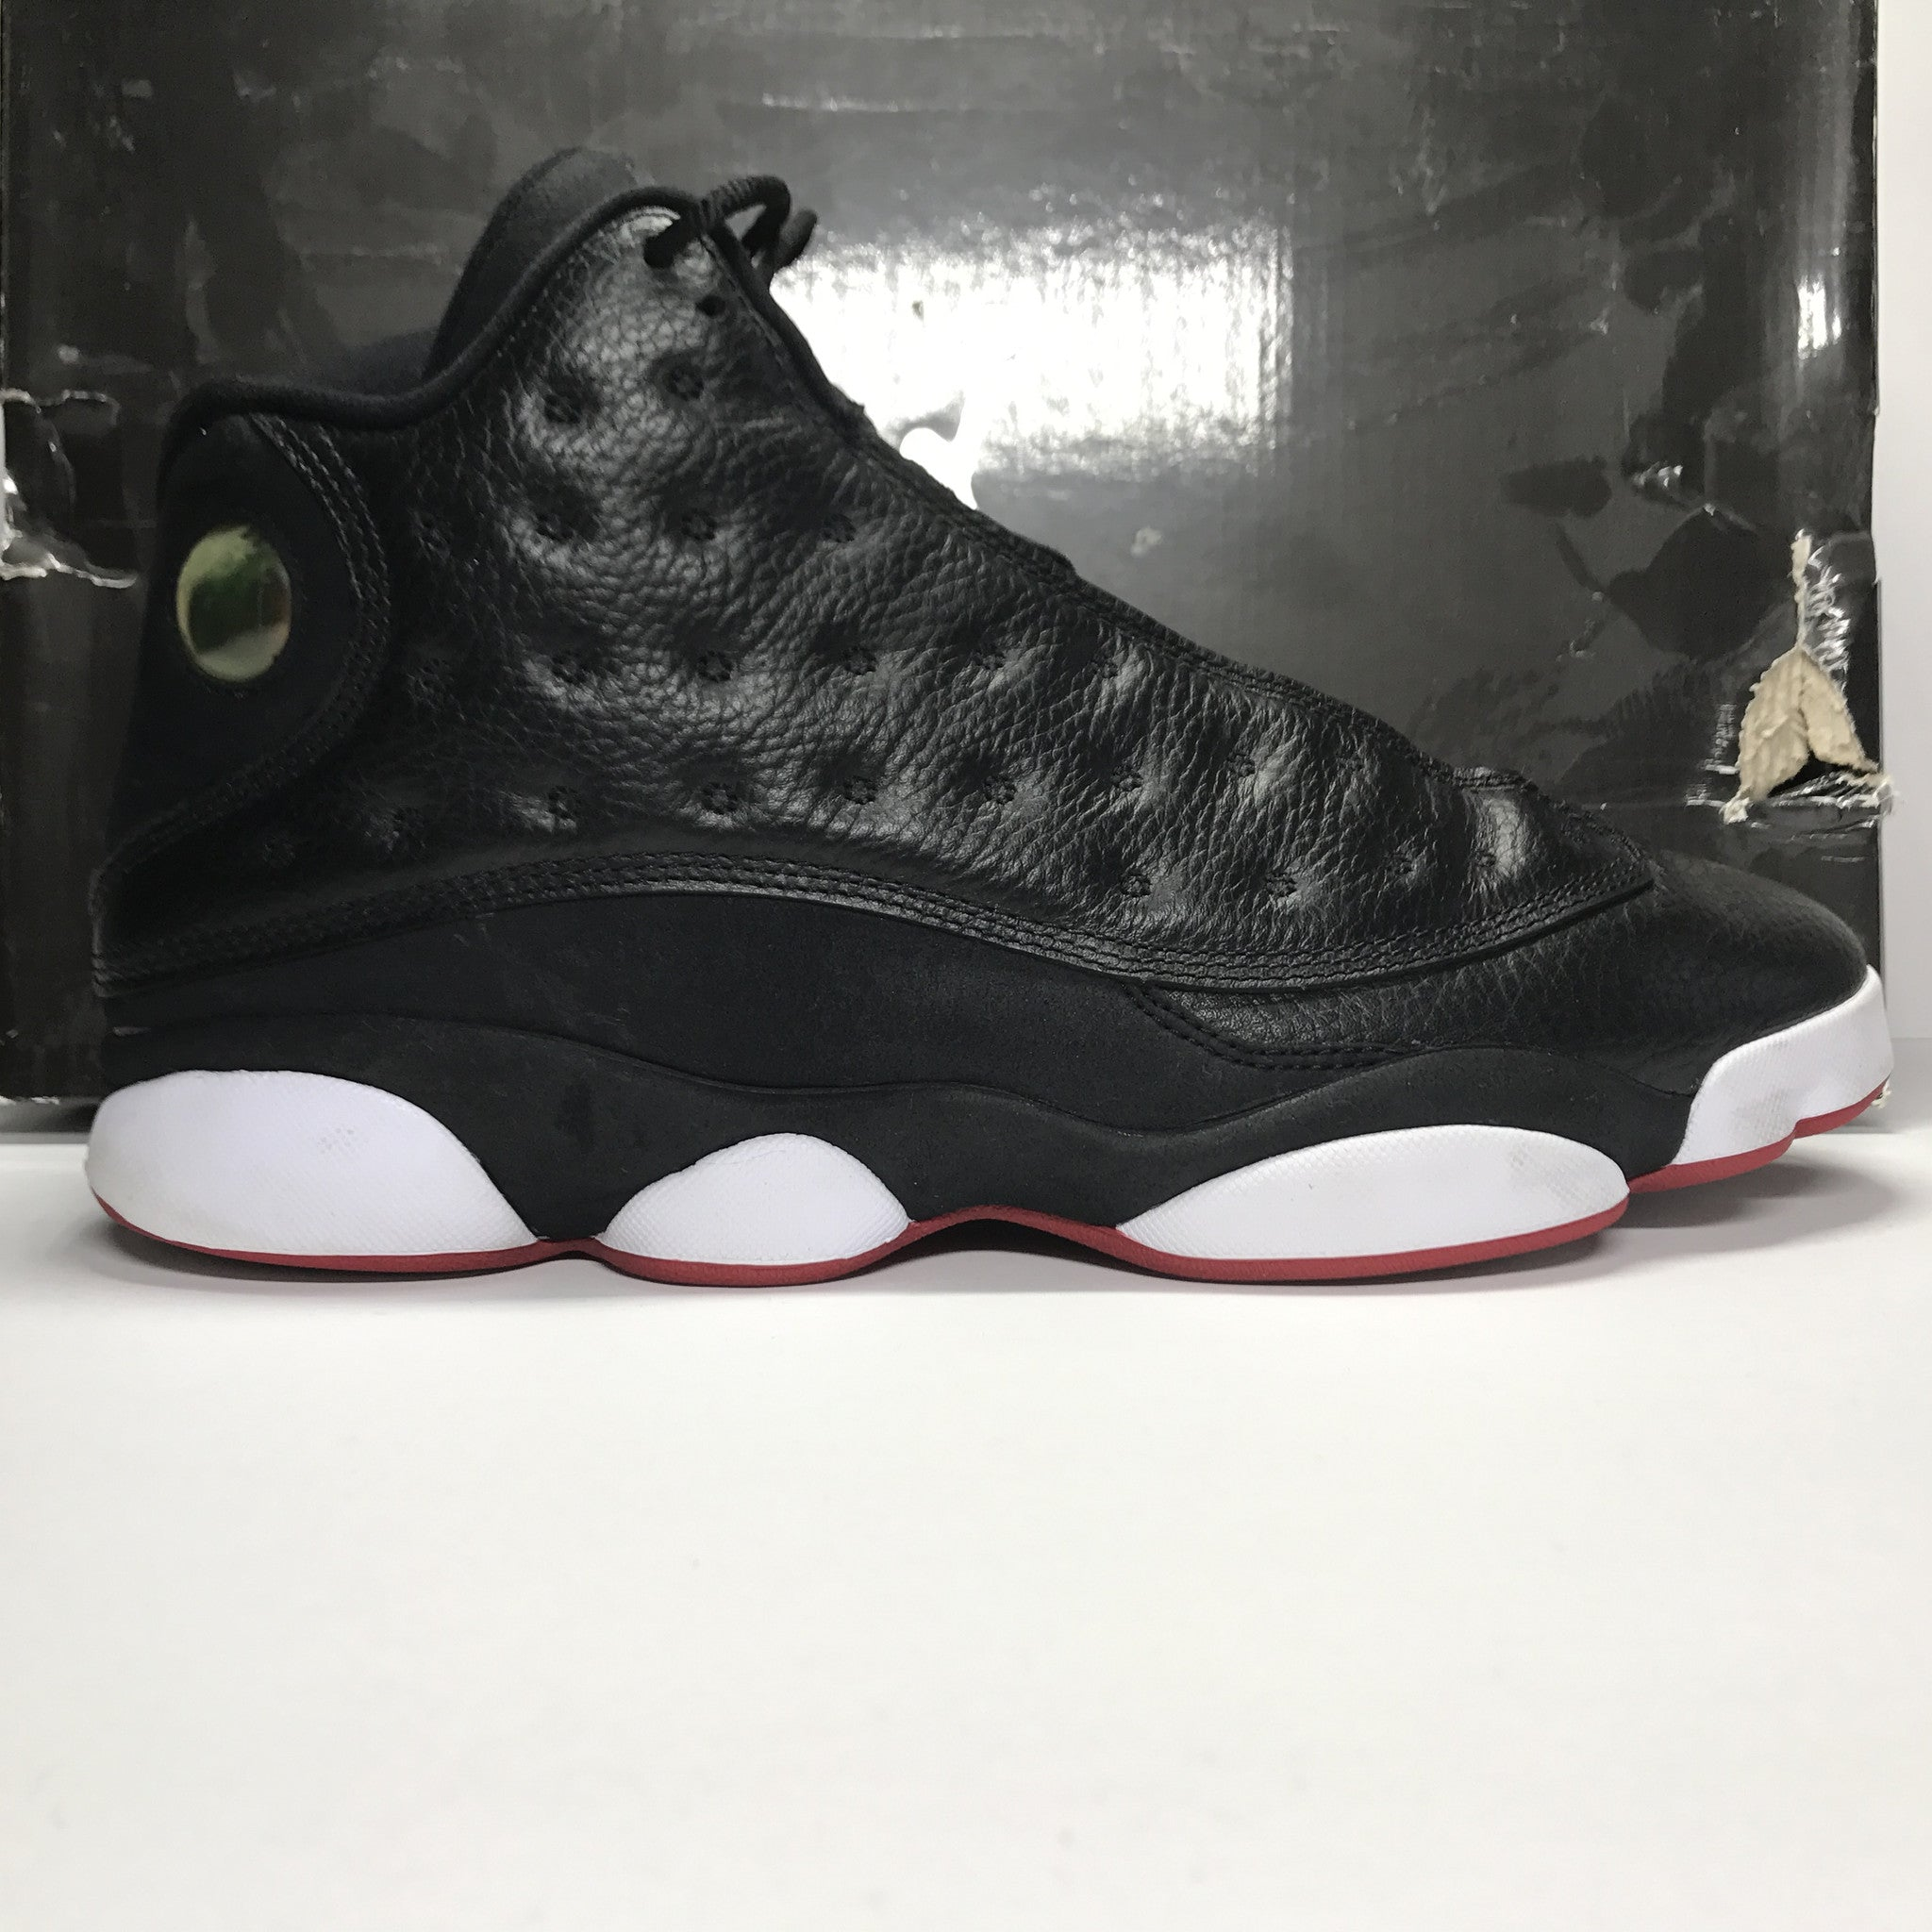 Nike Air Jordan 13 XIII Retro Playoff Size 11